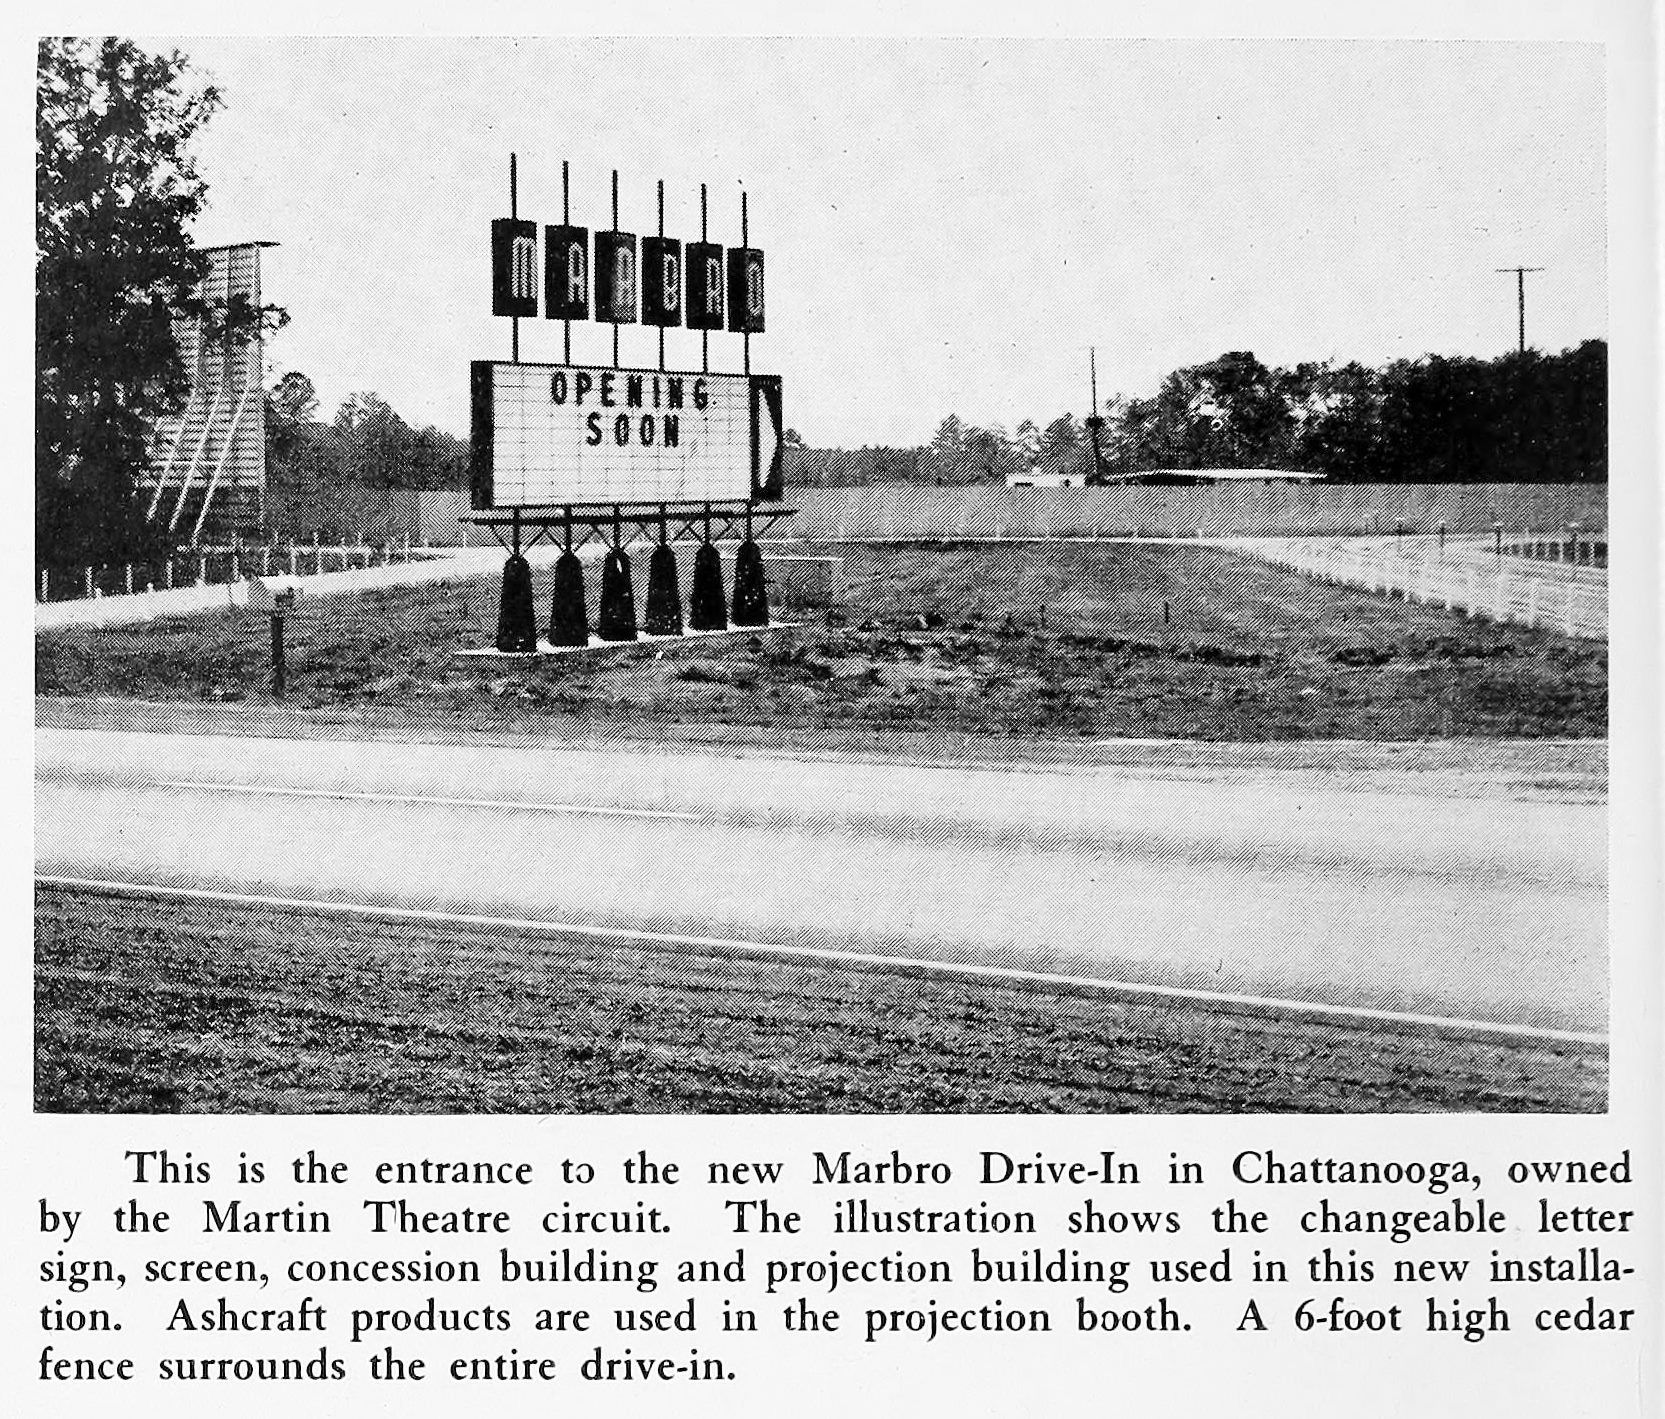 Marbro Drive In Chattanooga